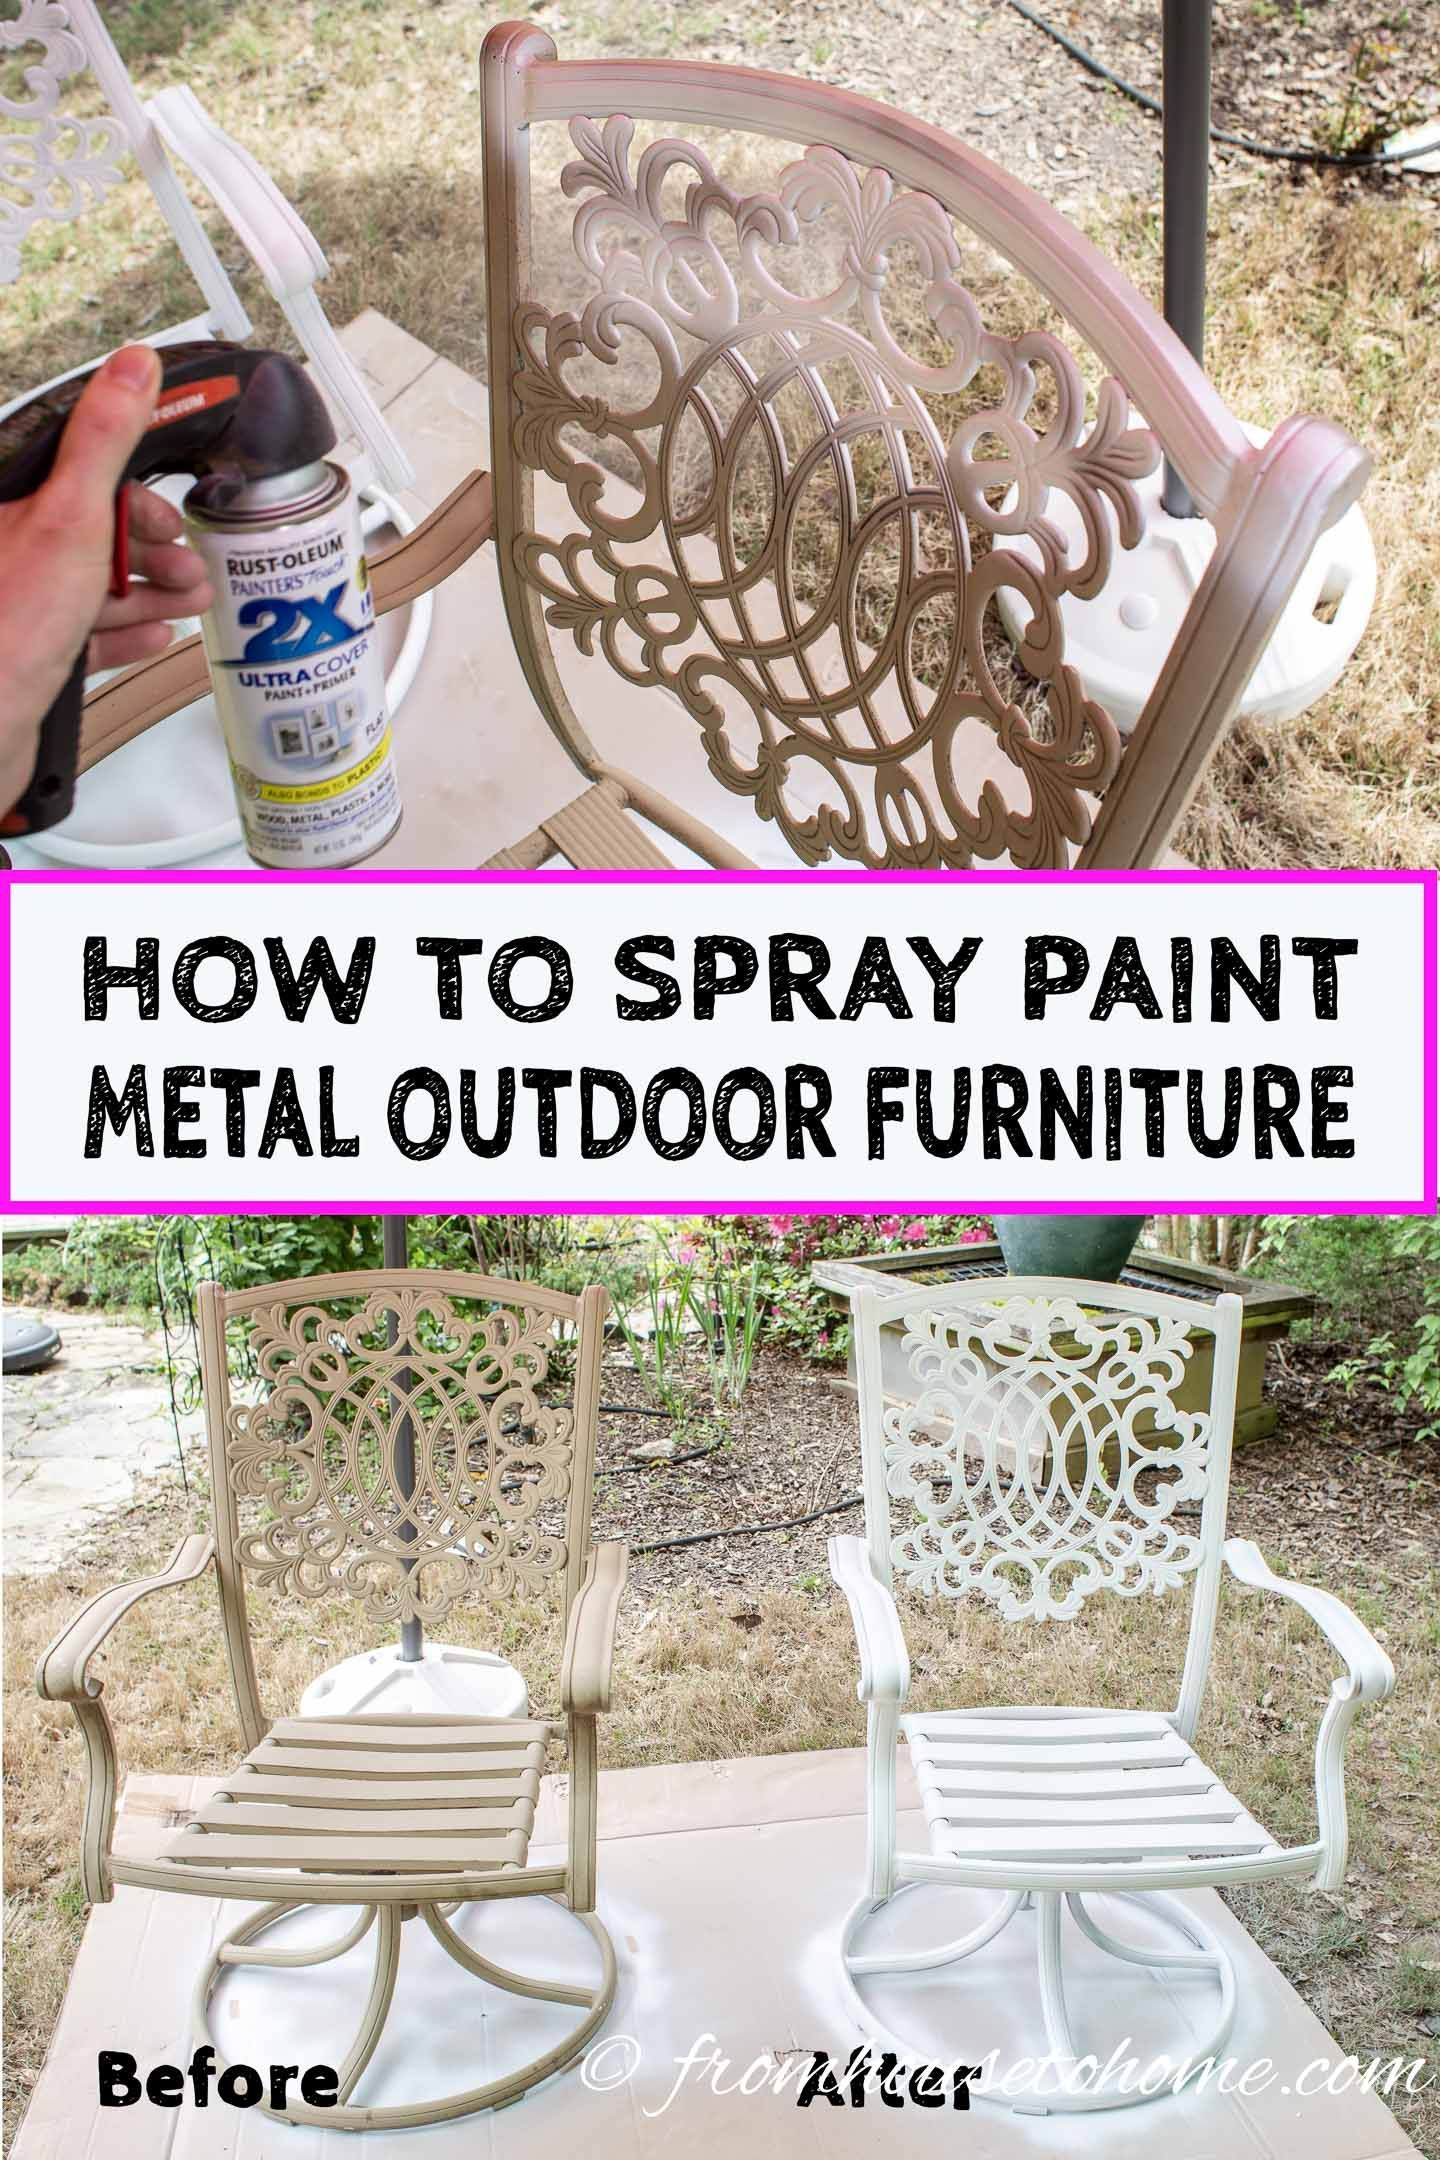 How To Paint Metal Patio Furniture With Images Painting Metal